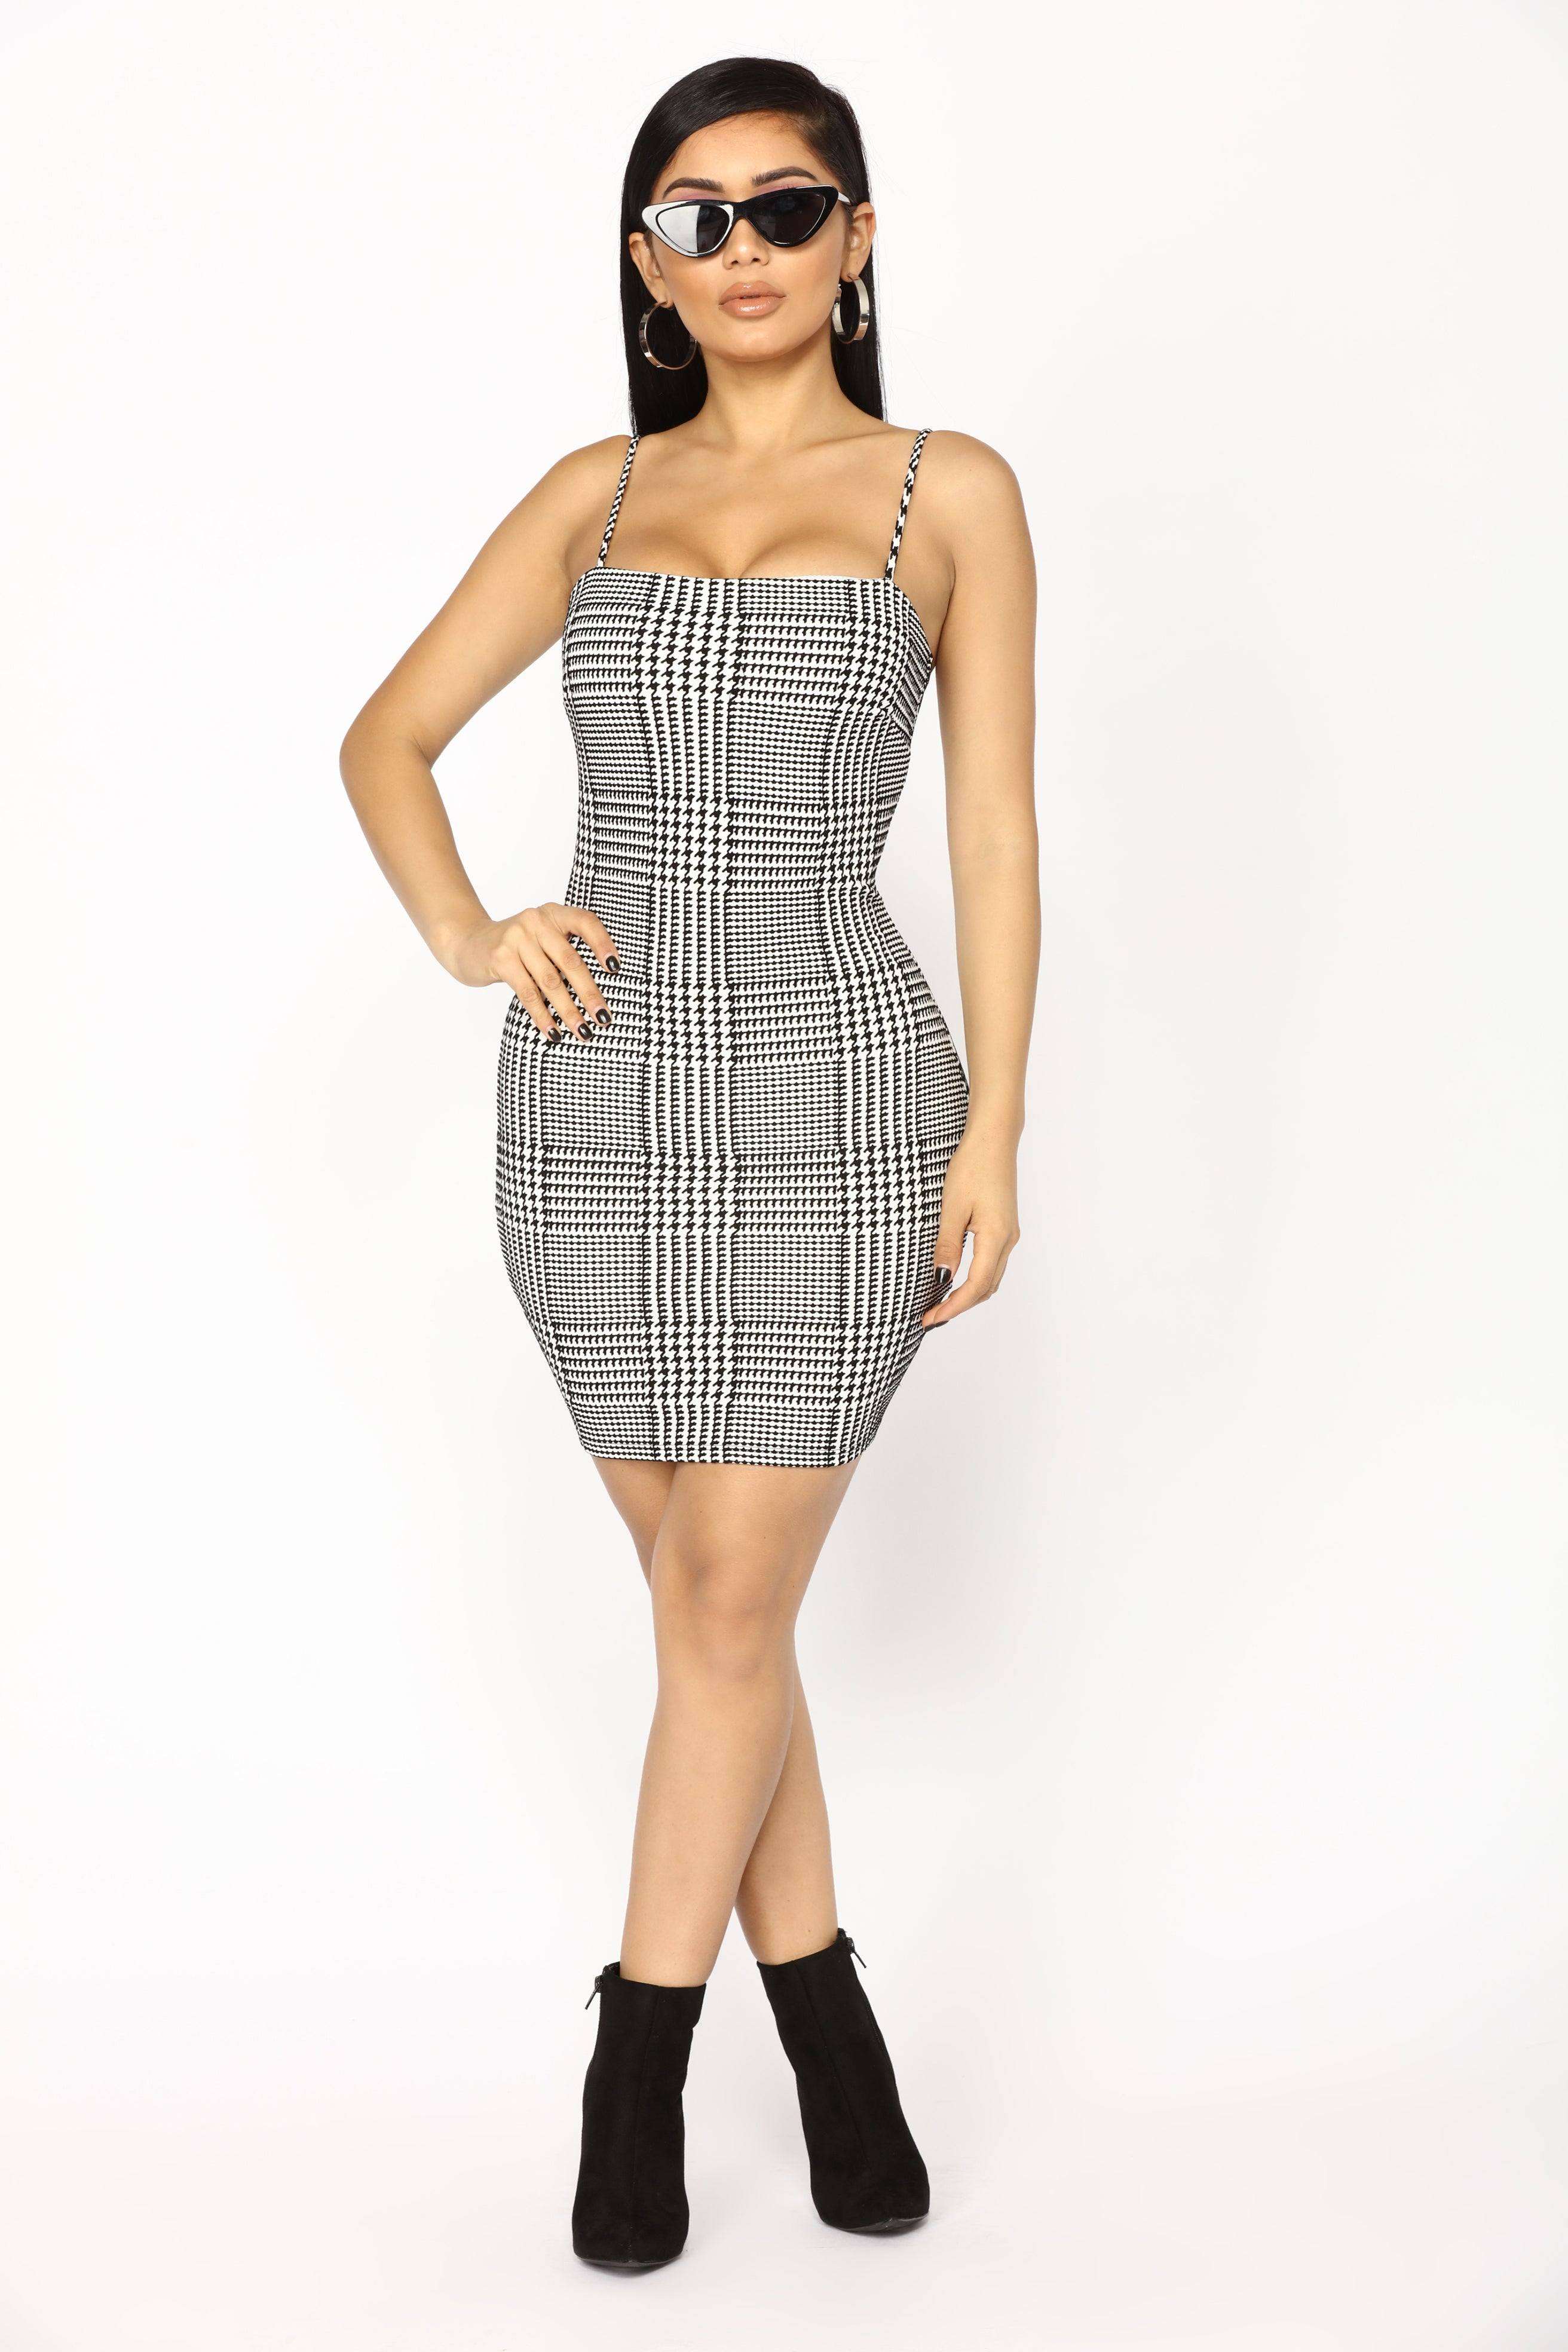 a7661961c37 Bills To Pay Houndstooth Dress - Black White